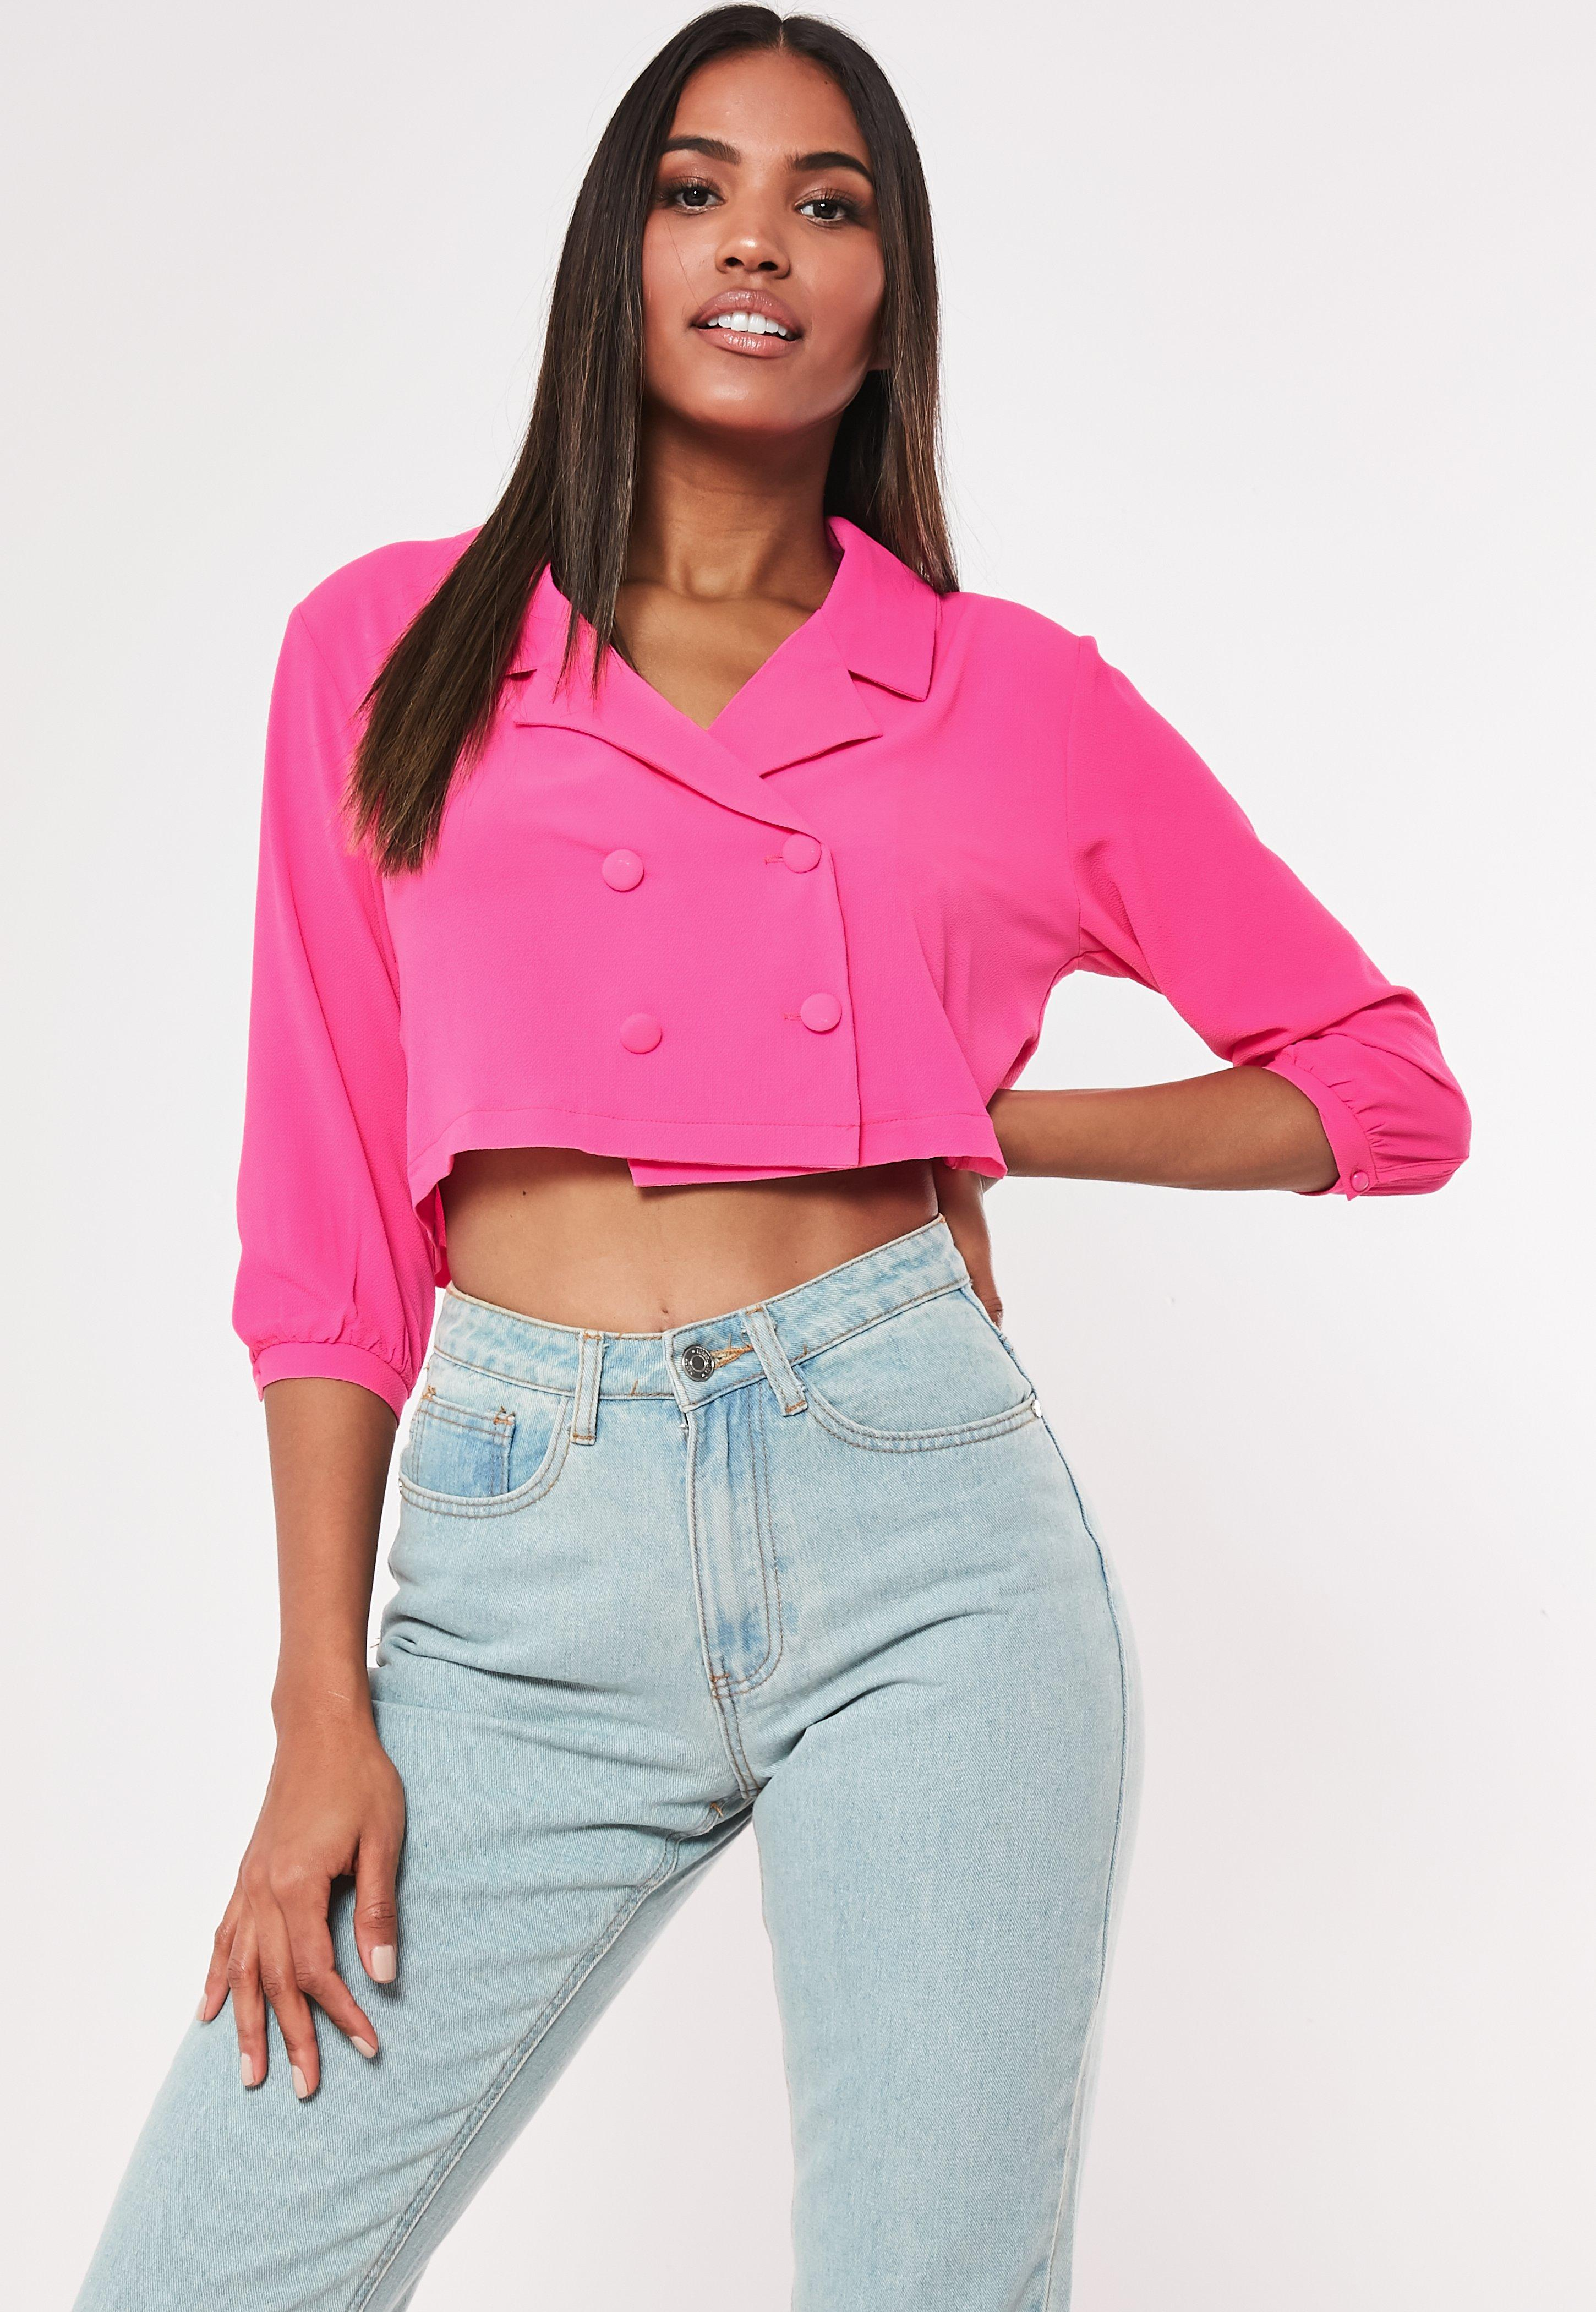 9f316868bc7527 Crop Tops - Women s Cropped   Short Tops